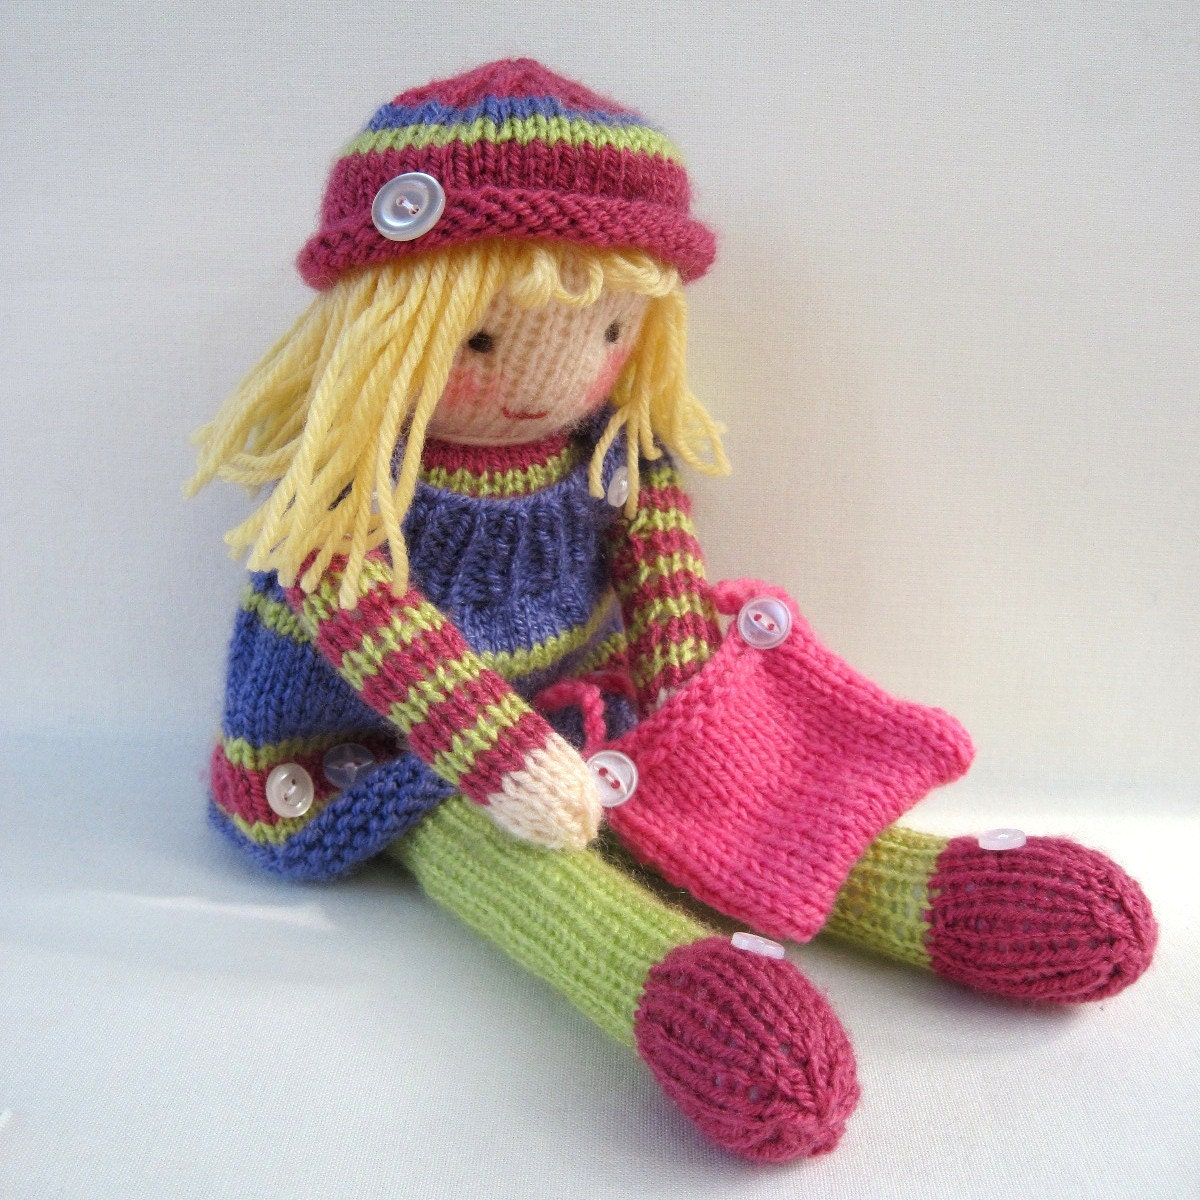 Knitting Patterns Toys : Betsy Button toy doll knitting pattern PDF INSTANT